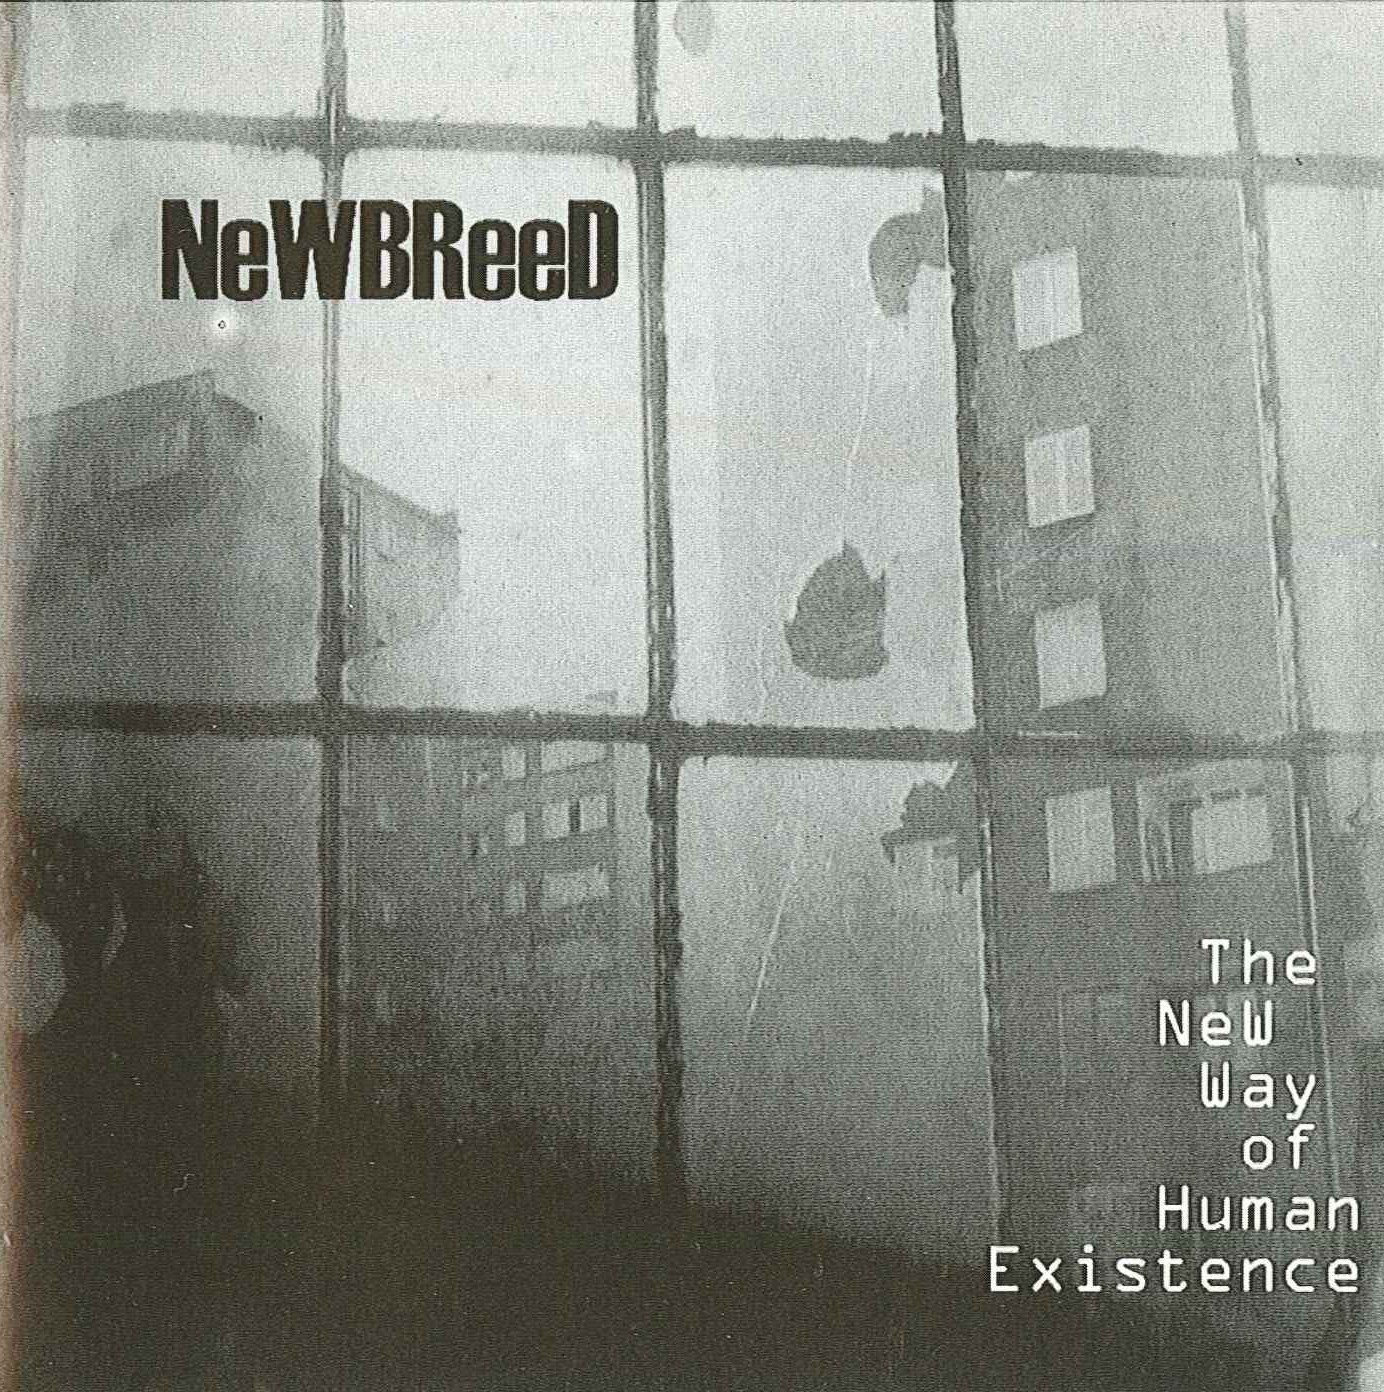 NEWBREED The New Way Of Human Existence `02